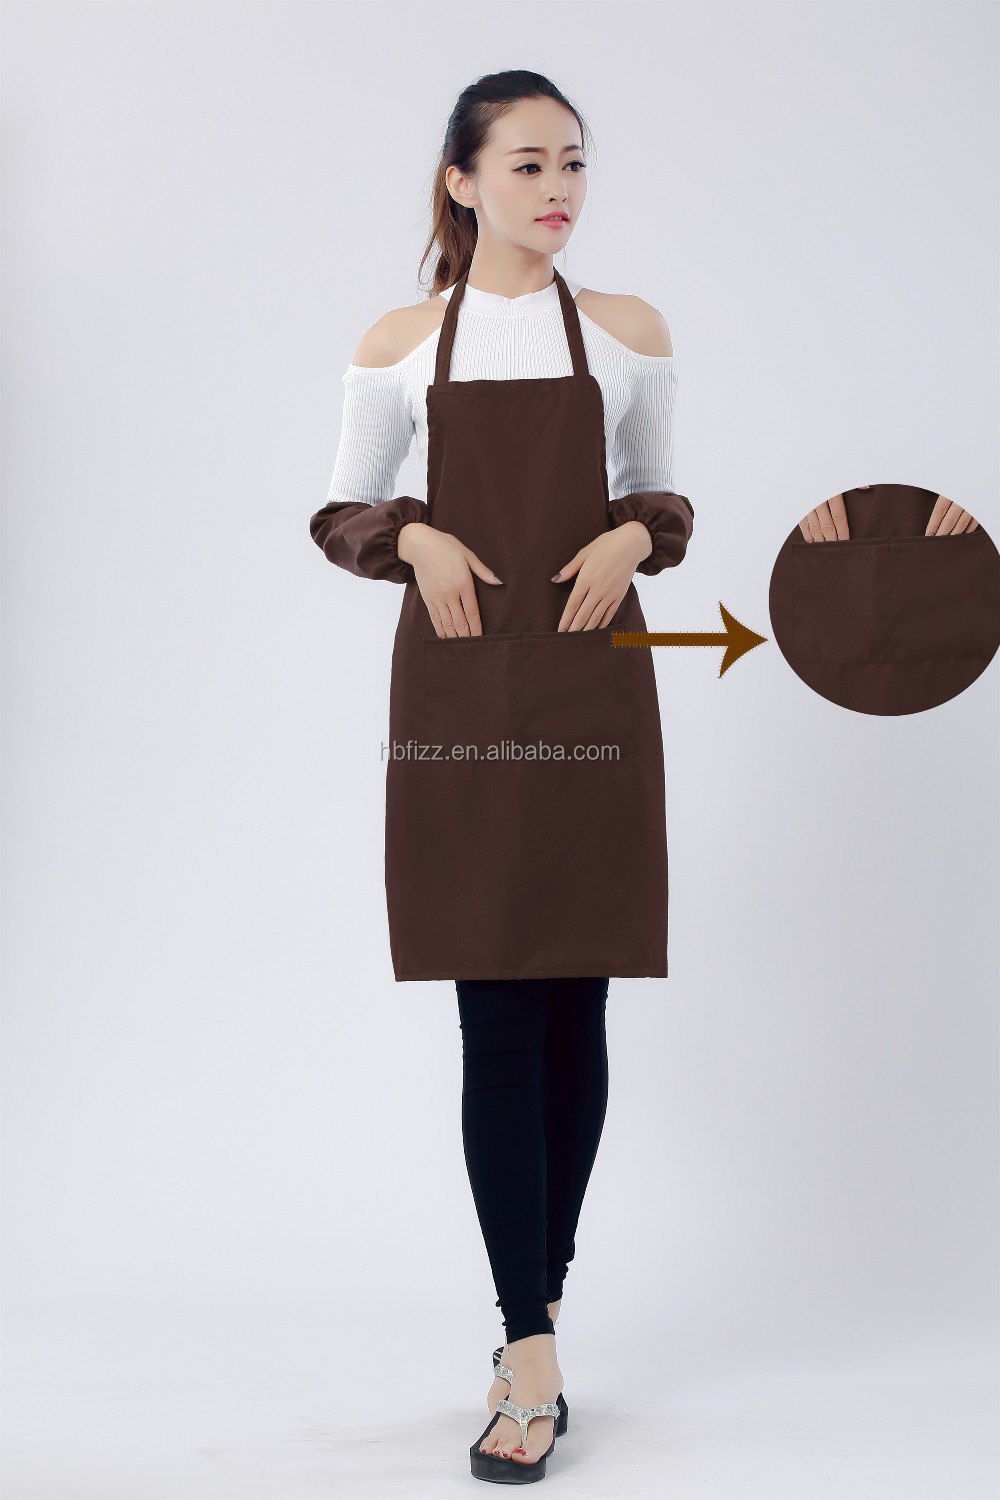 Hot 100% Polyester Fabric For Cleaning Apron